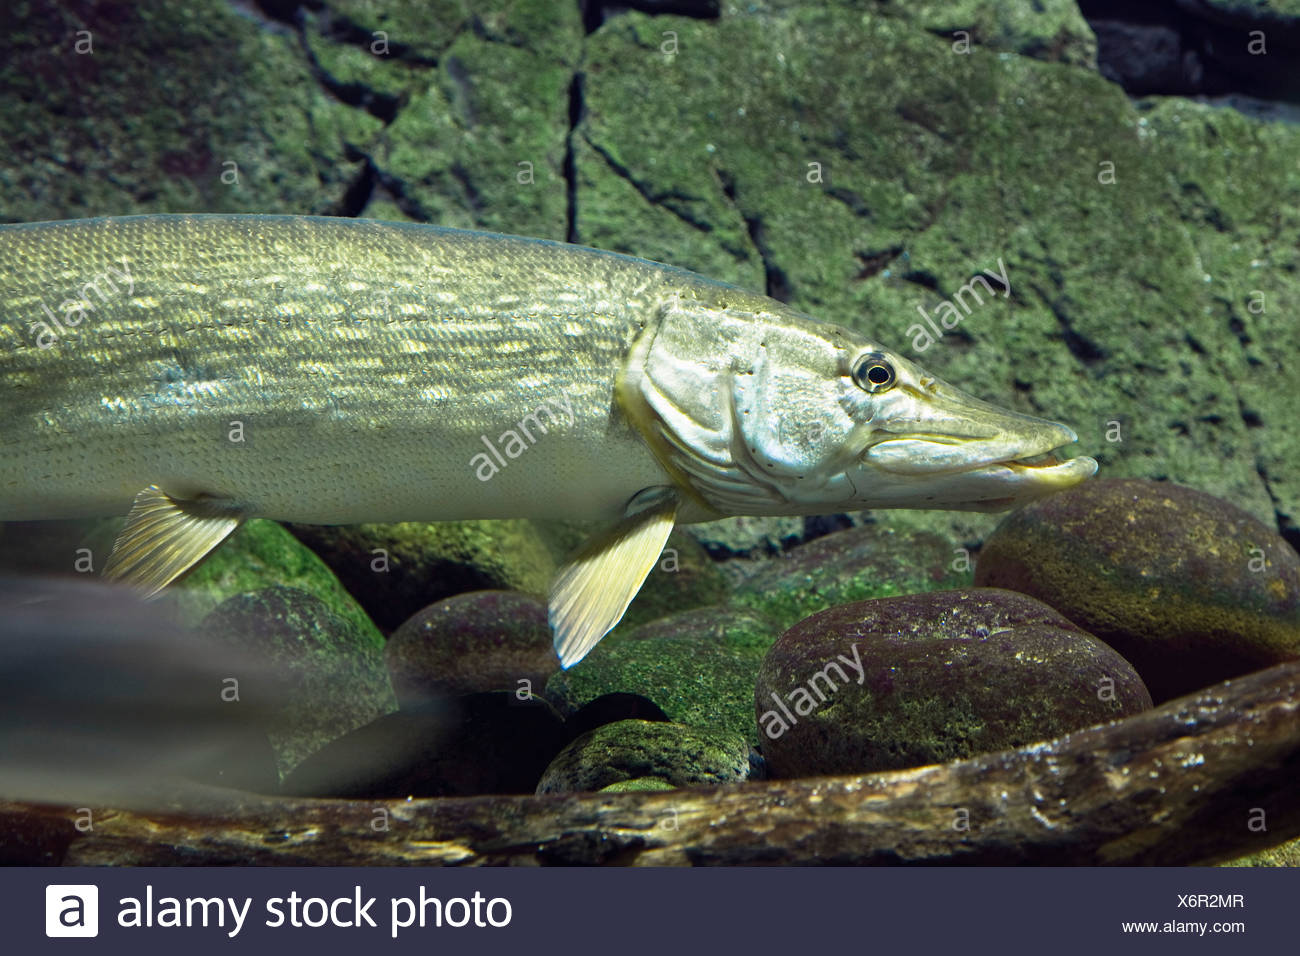 Pike, Esox lucius Stock Photo